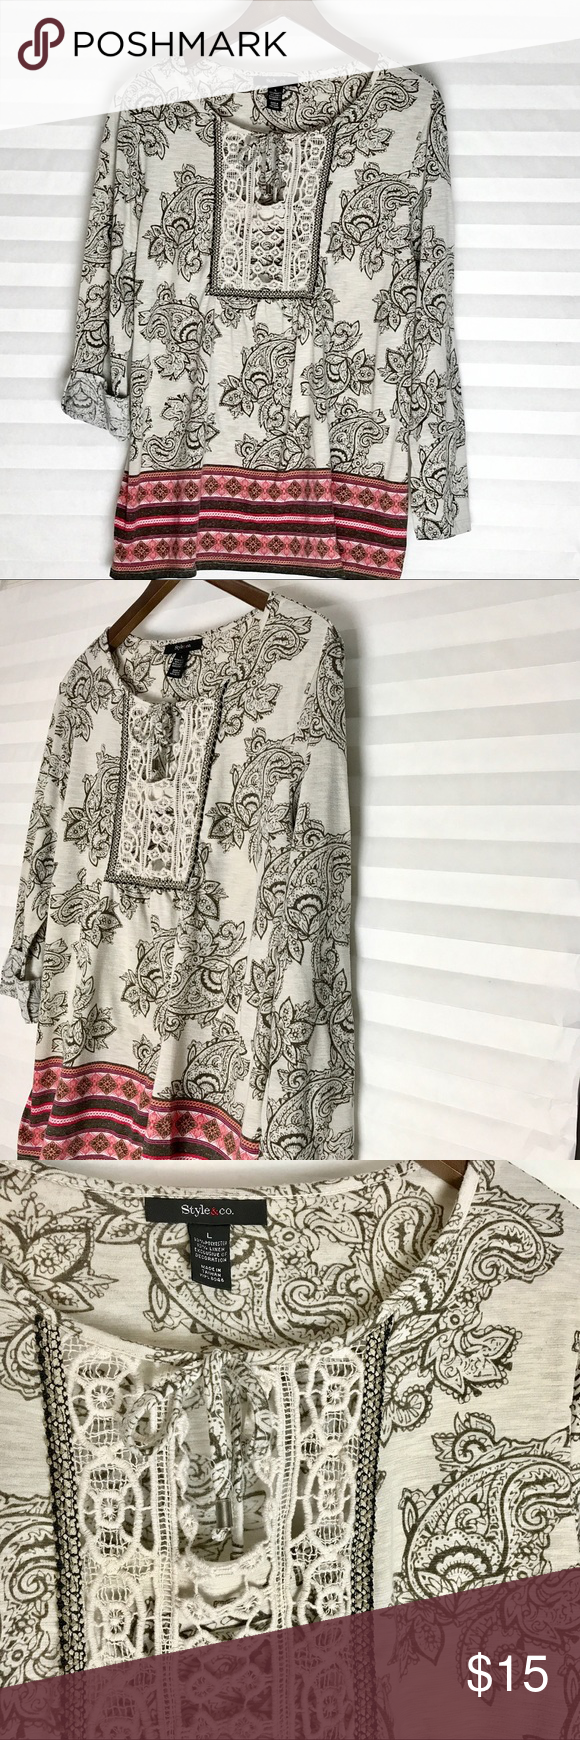 Flower Print Blouse 🌺 Style & Co. Beautiful Gently Pre-Loved Flower Print Blouse 🌺 Style & Co., Size L. Style & Co Tops Blouses